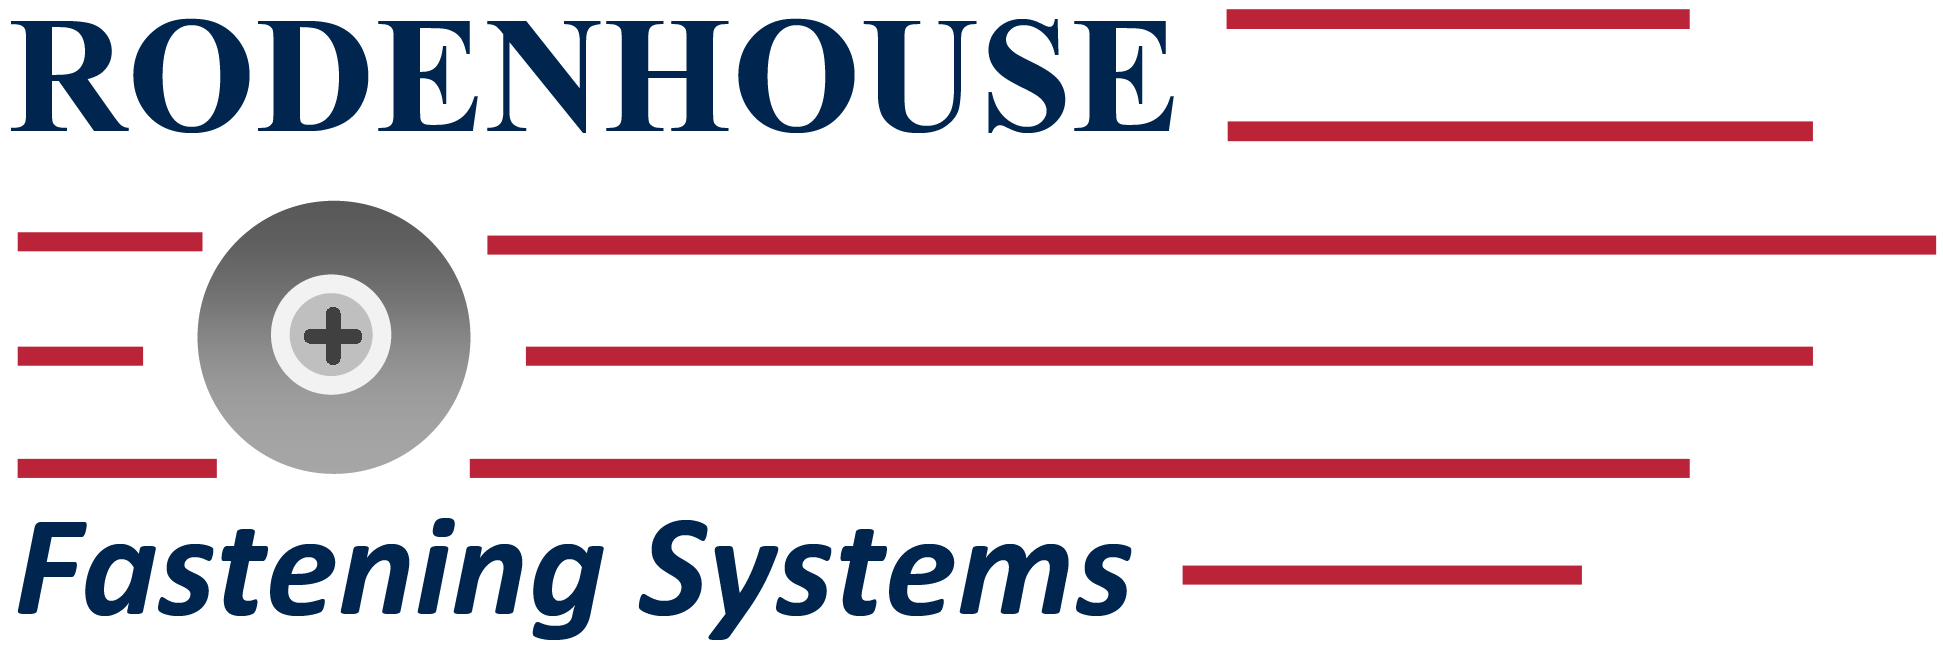 Rodenhouse Fastening Systems logo